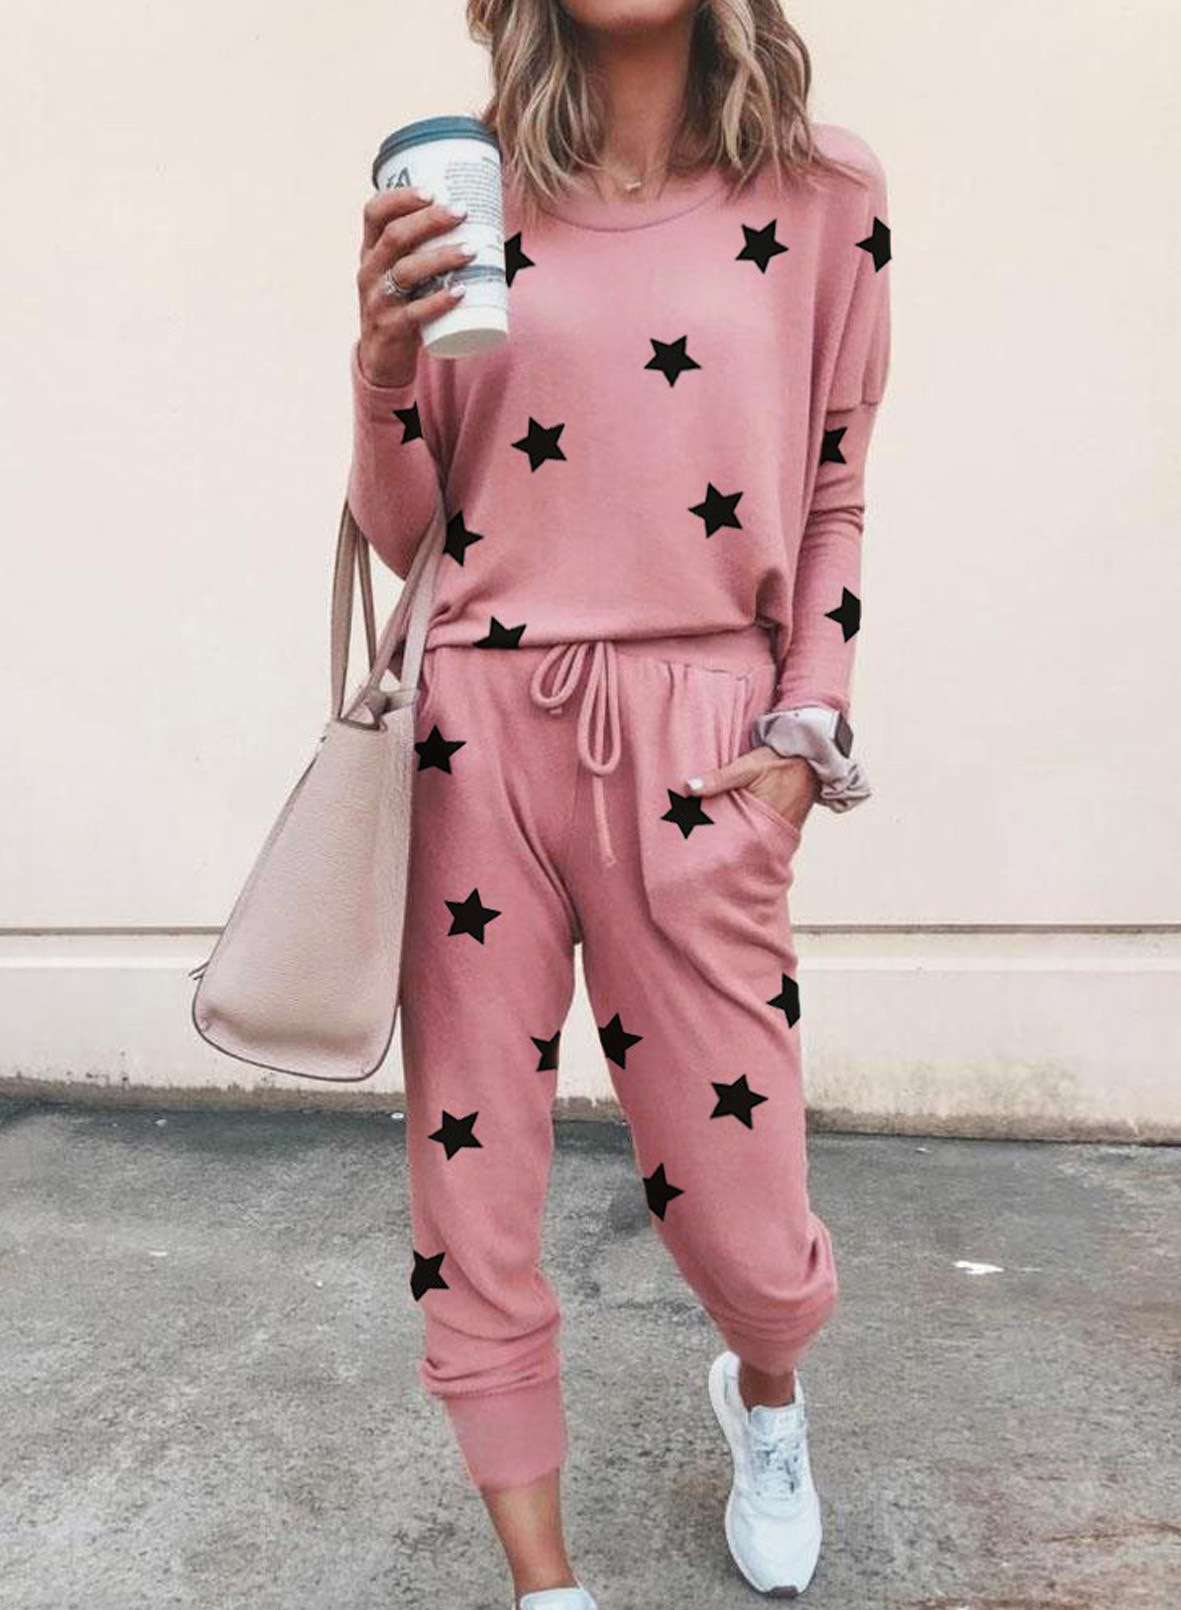 autumn new style stars print round neck long-sleeved lady t-shirt suit NSSI2957